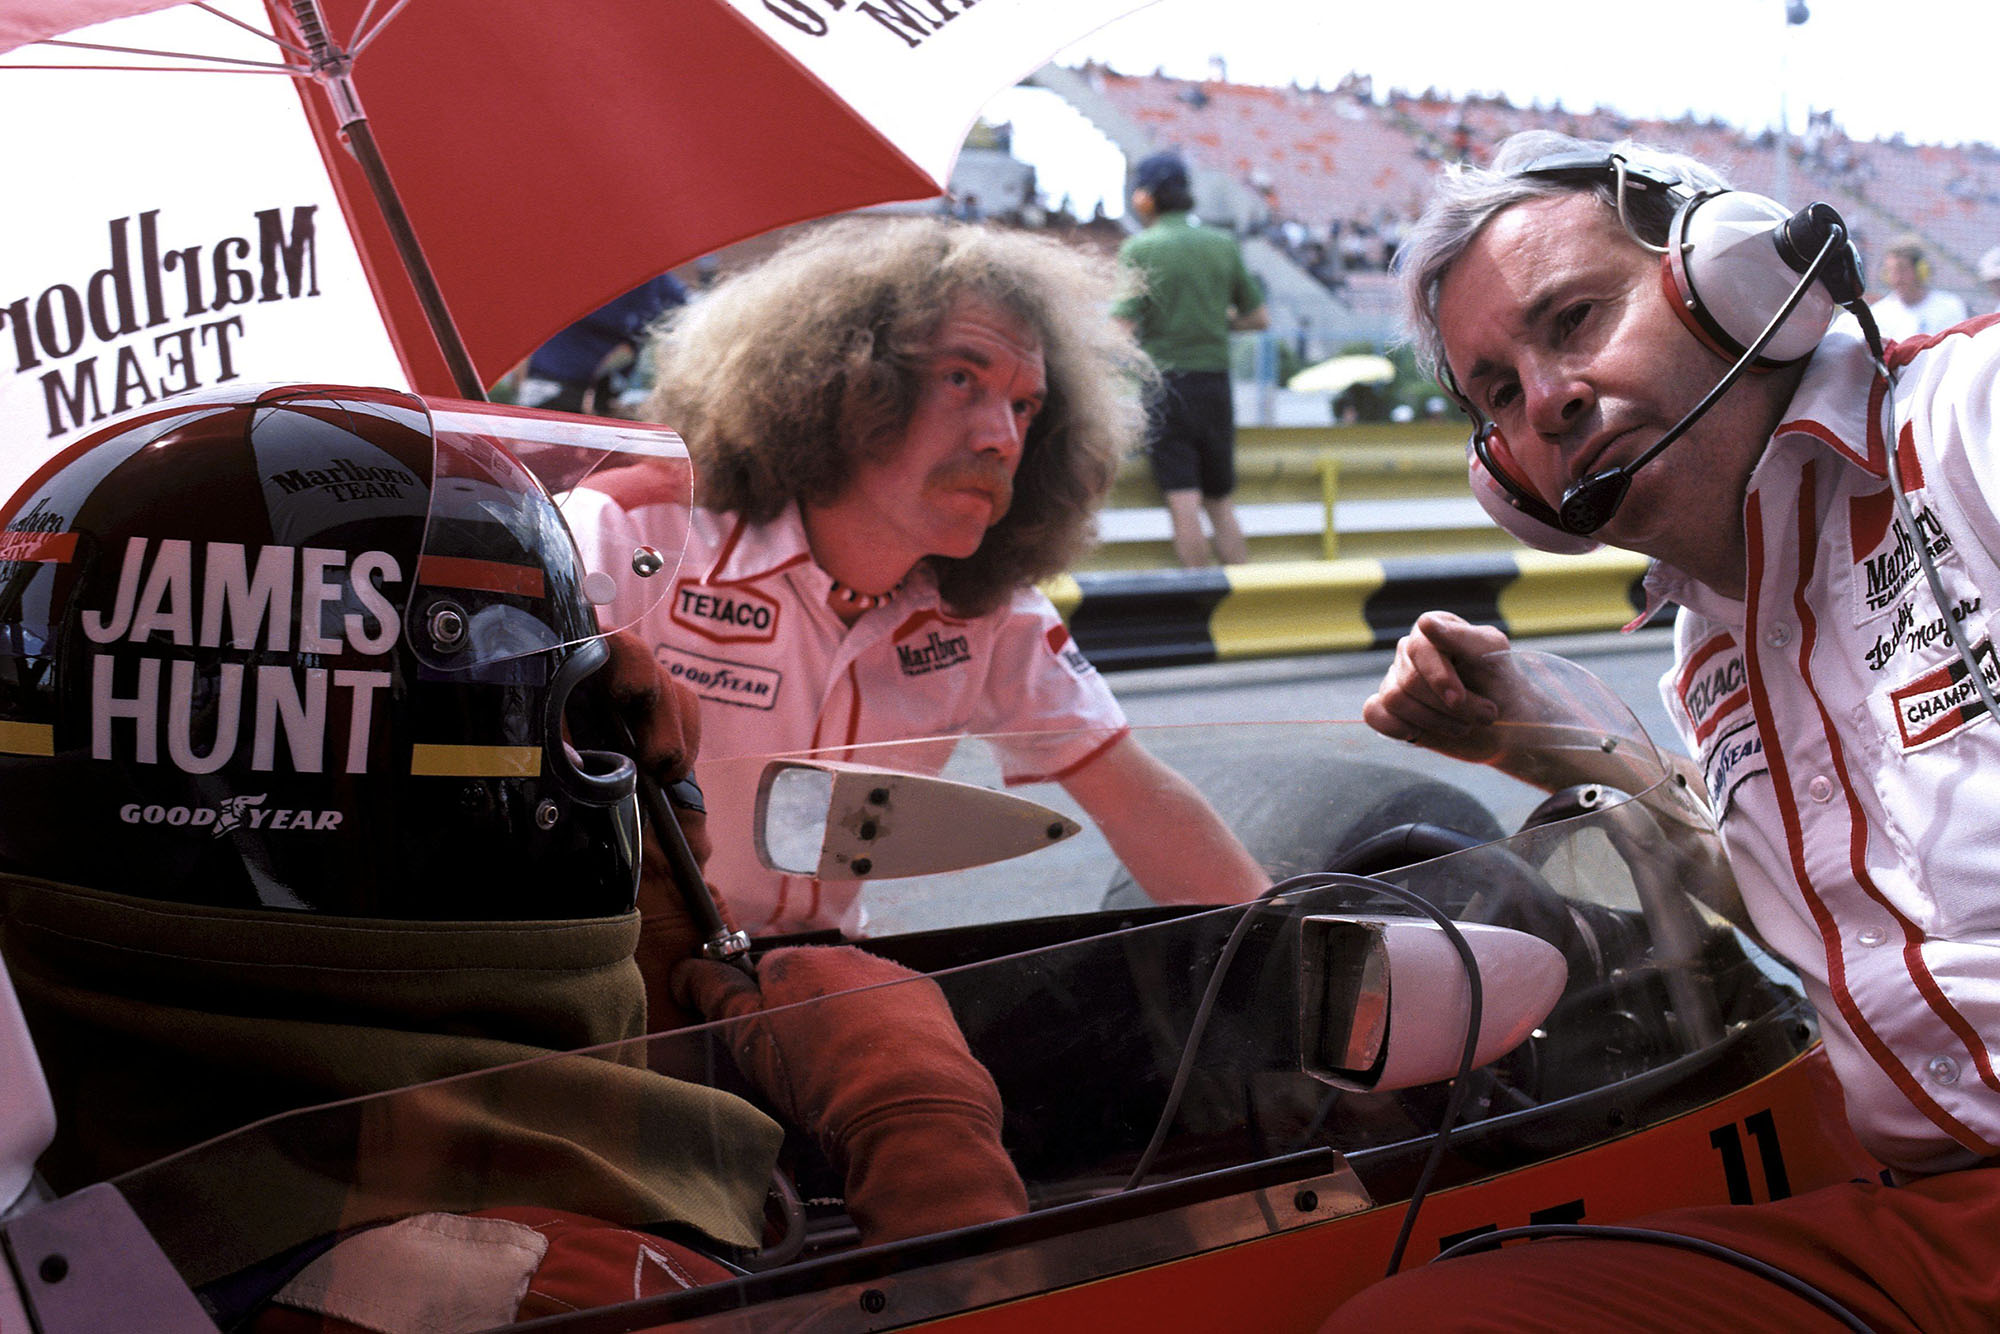 James Hunt prepares for the start of the 1977 Argentine Grand Prix, Buenos Aires